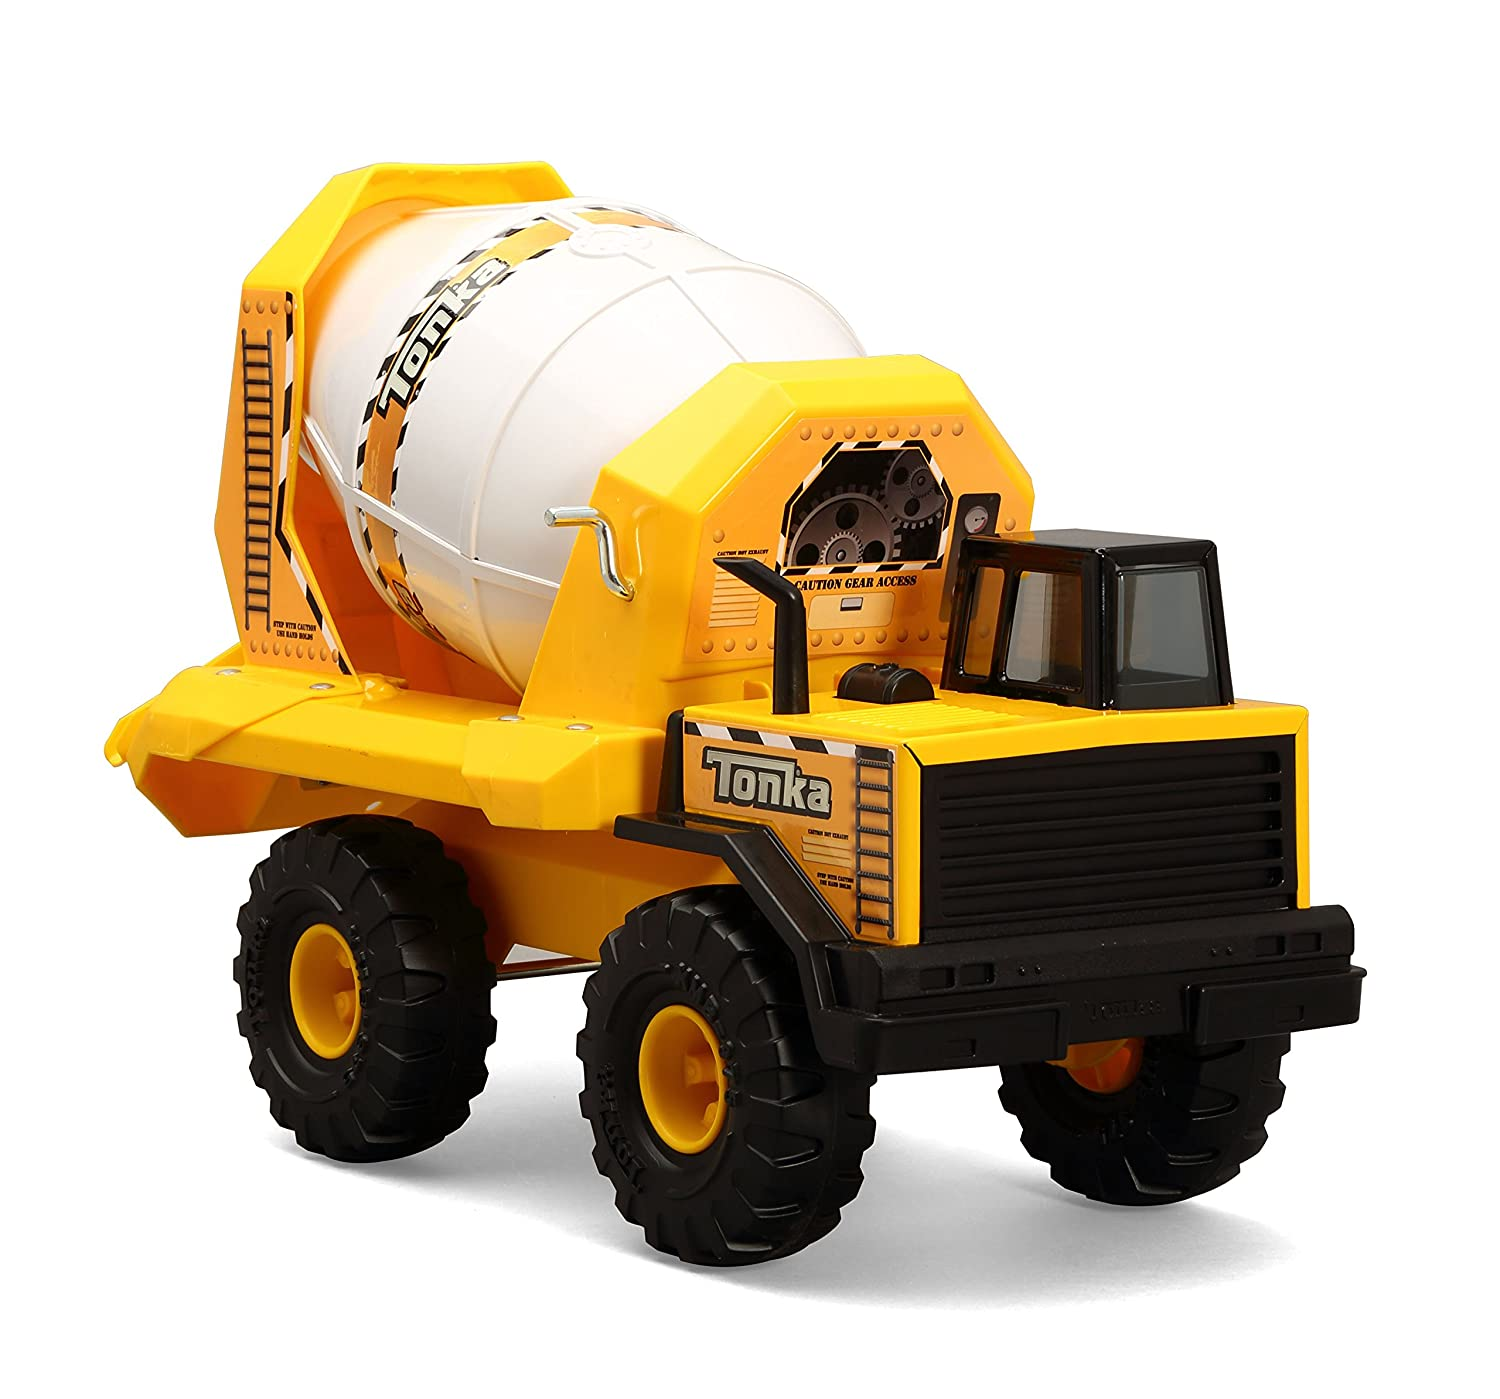 Tonka Steel Cement Mixer Vehicle 93905